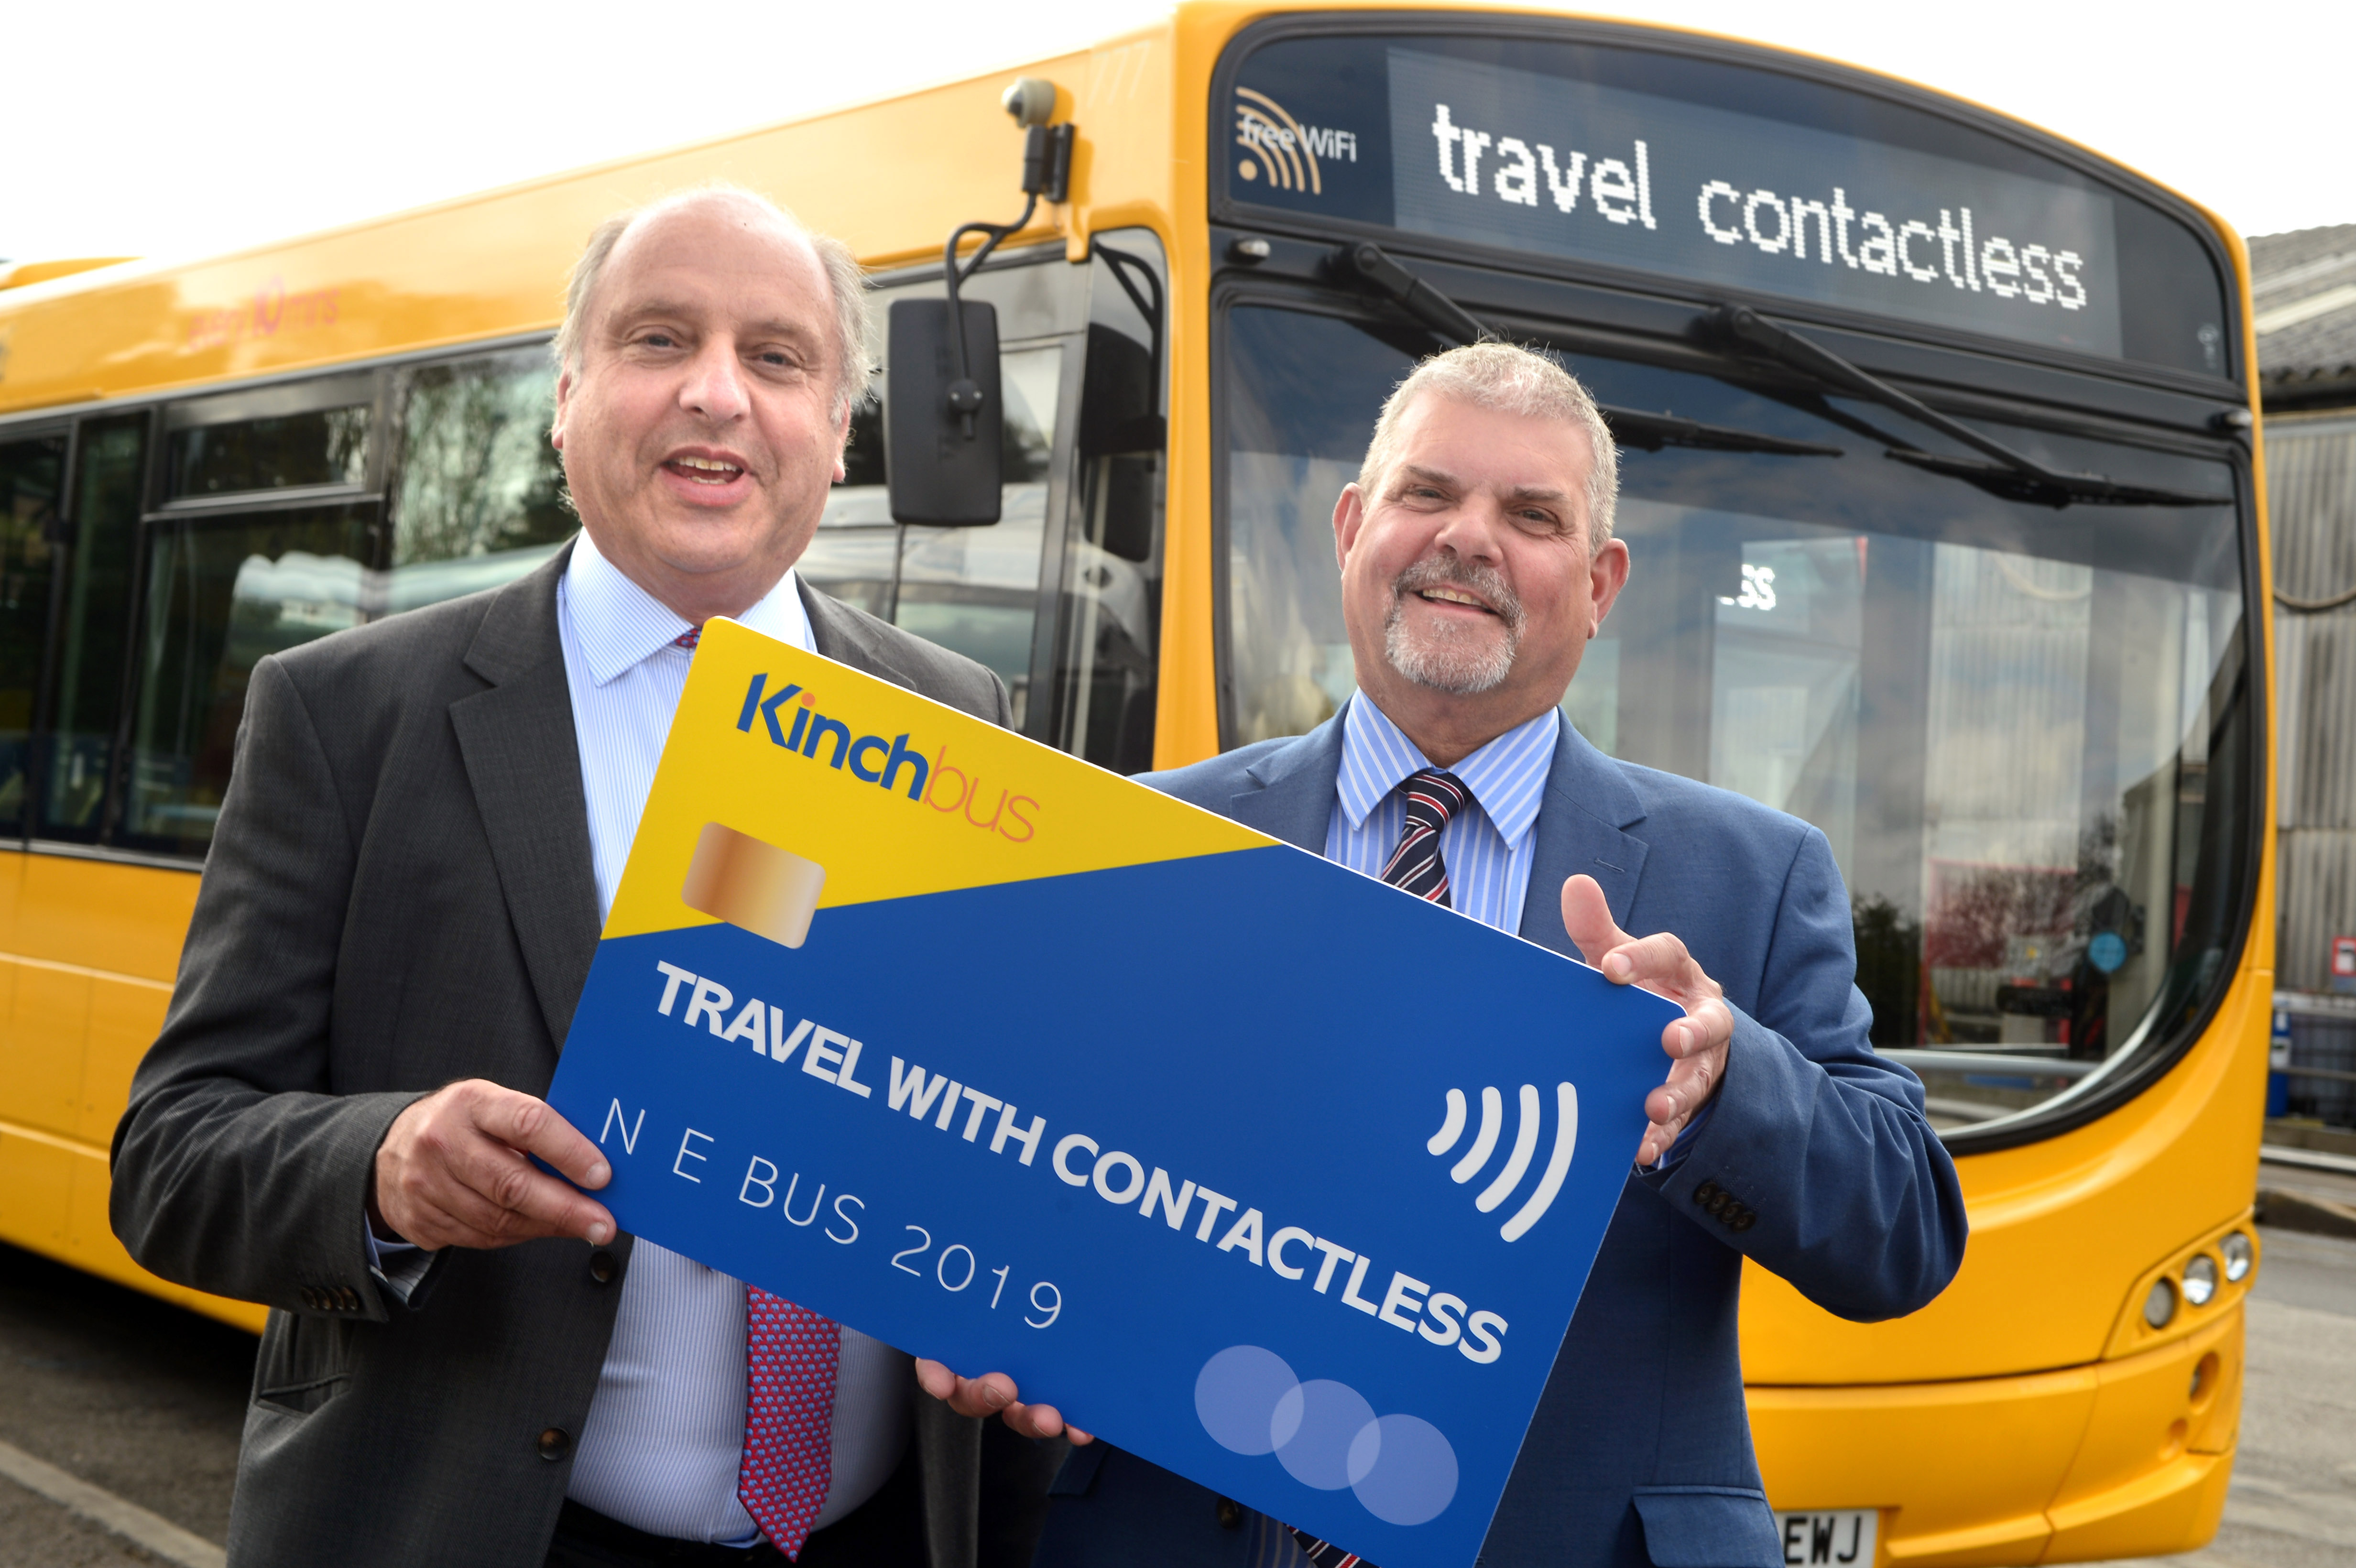 UK first as Kinchbus leads with contactless